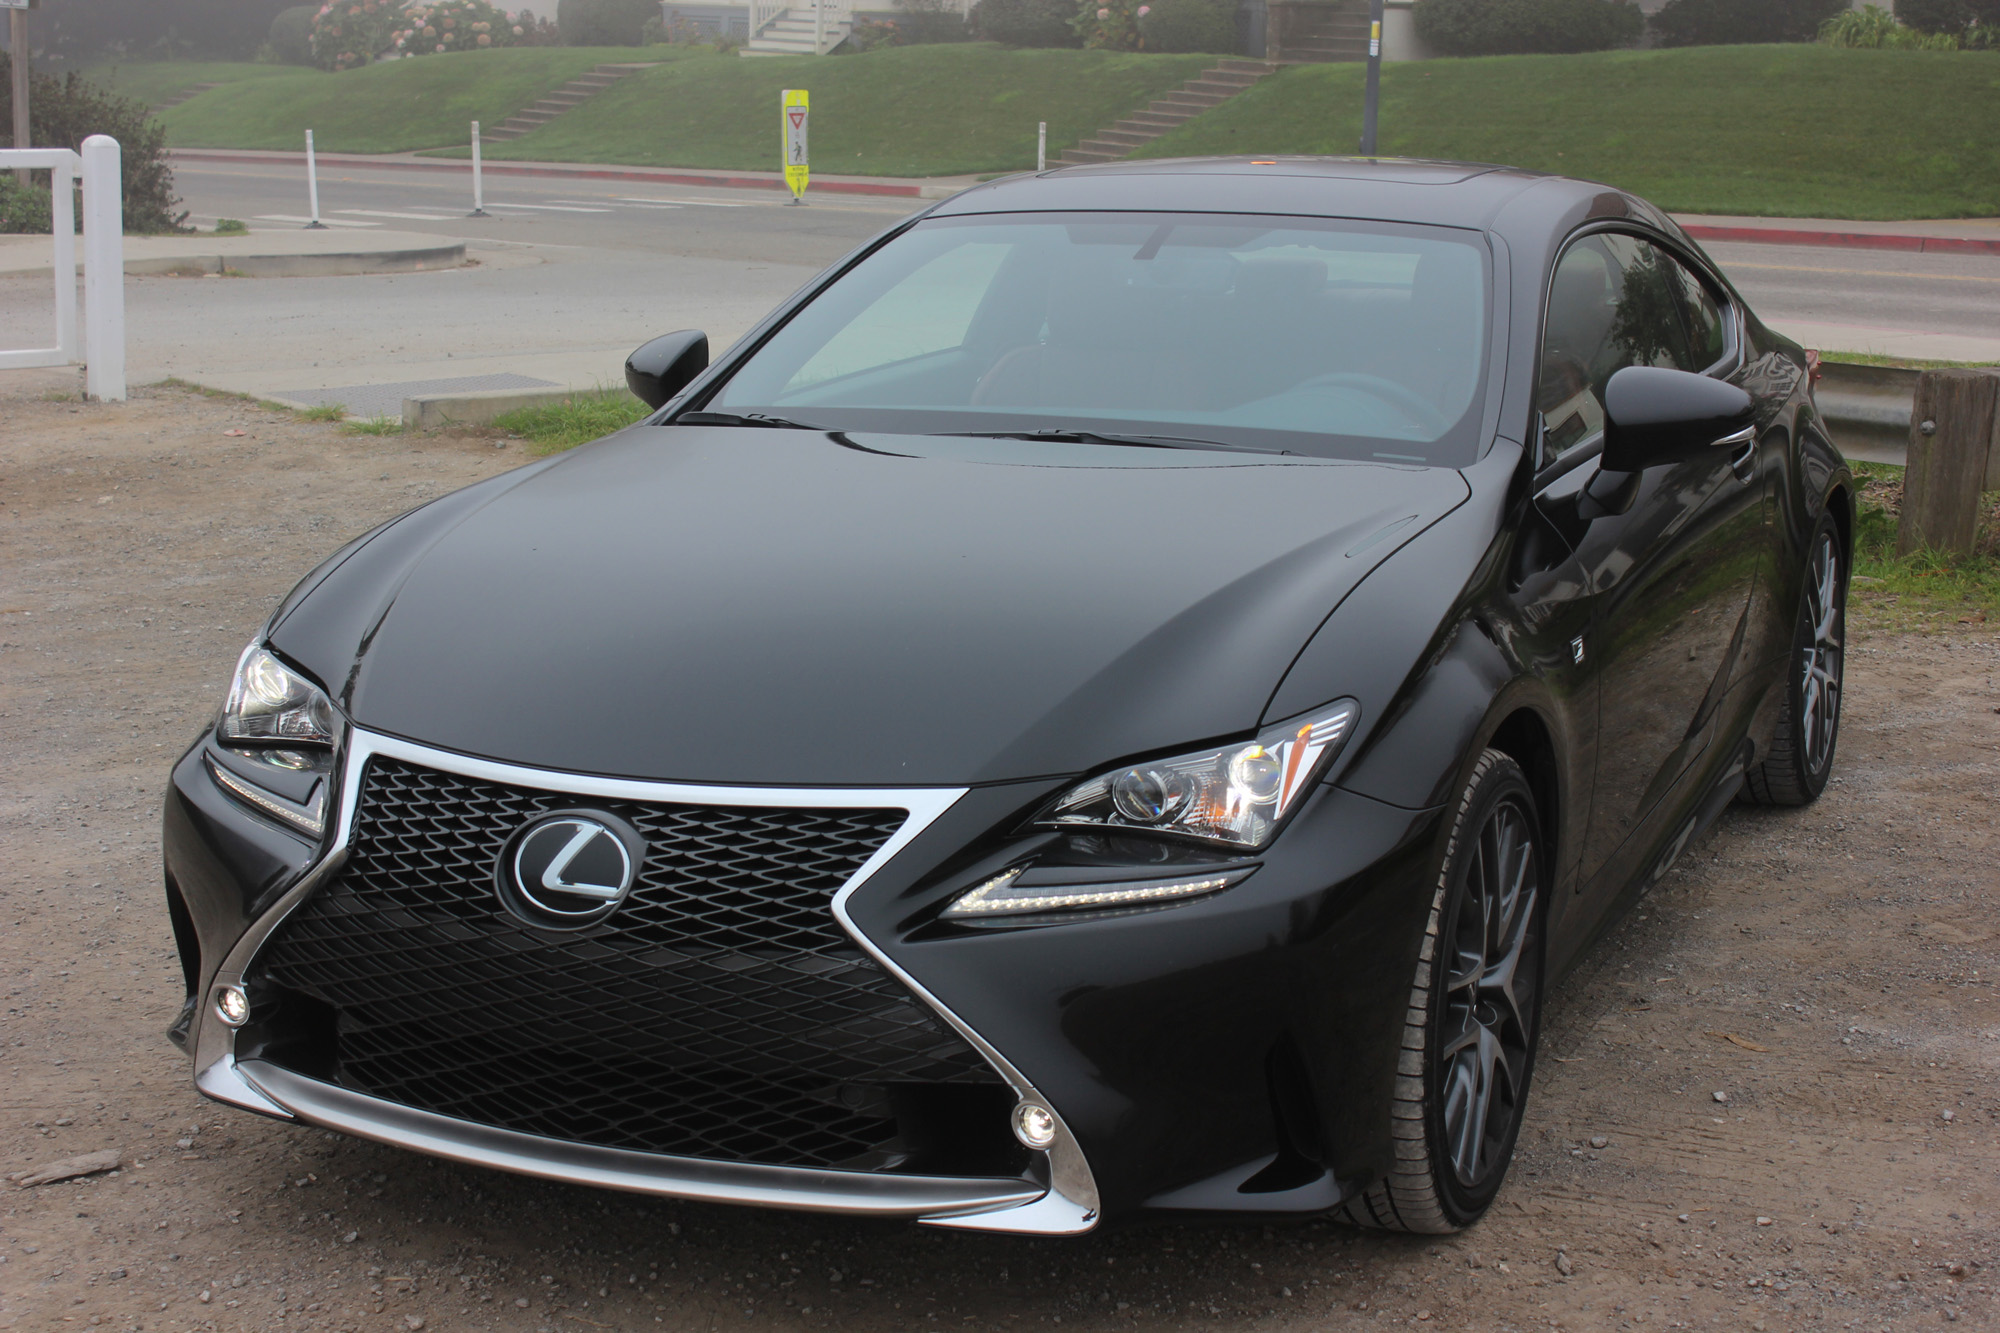 2015 lexus rc f sport car photos catalog 2018. Black Bedroom Furniture Sets. Home Design Ideas